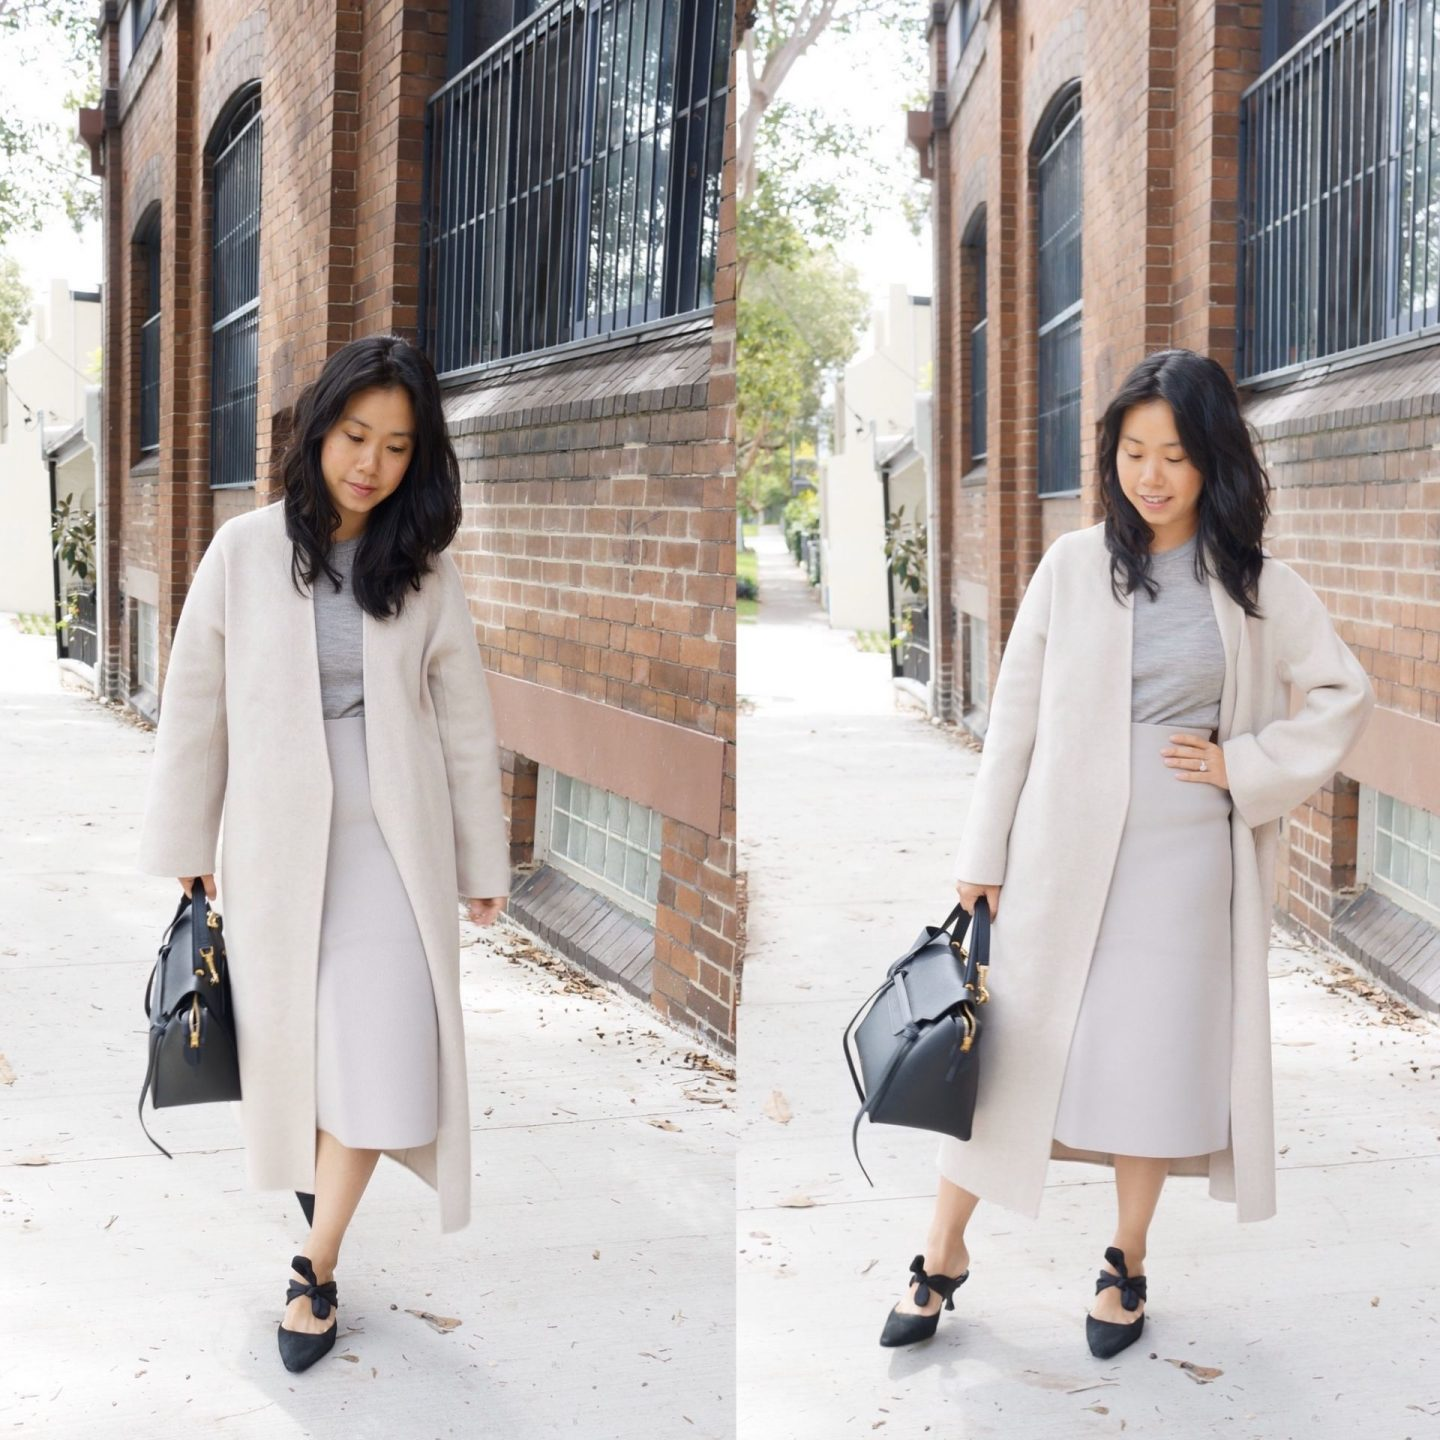 stylish winter coats - lighter neutral